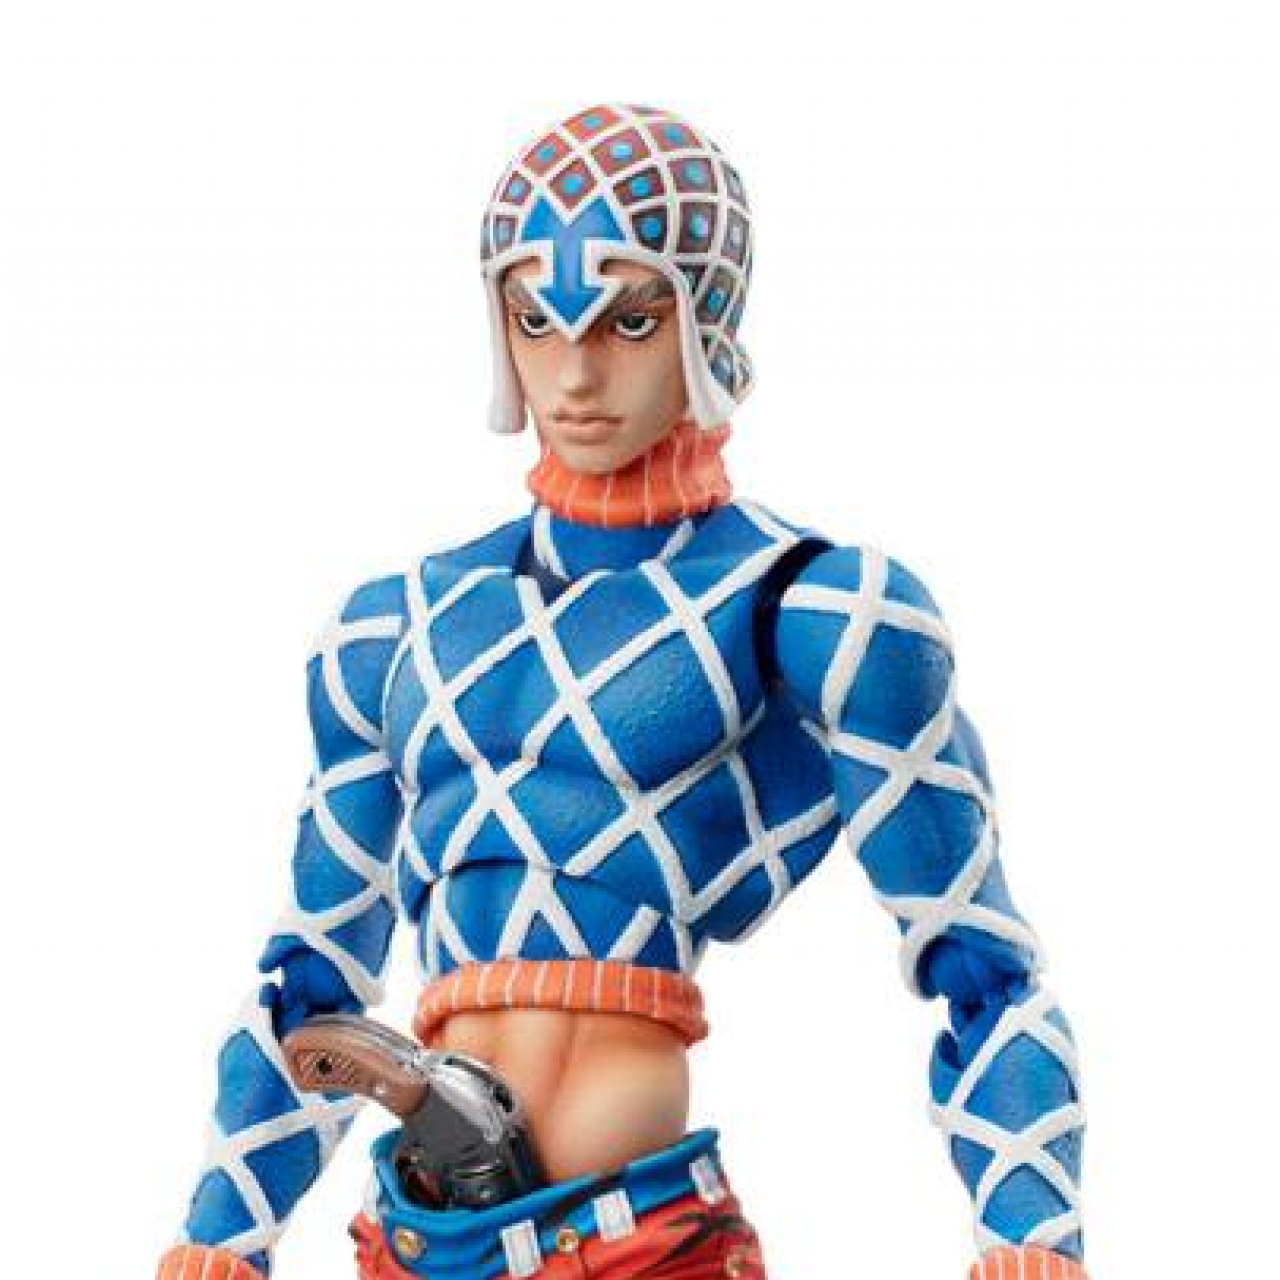 JoJo's Bizarre Adventure Part 5: Golden Wind Action Figure Guido Mista 16 cm